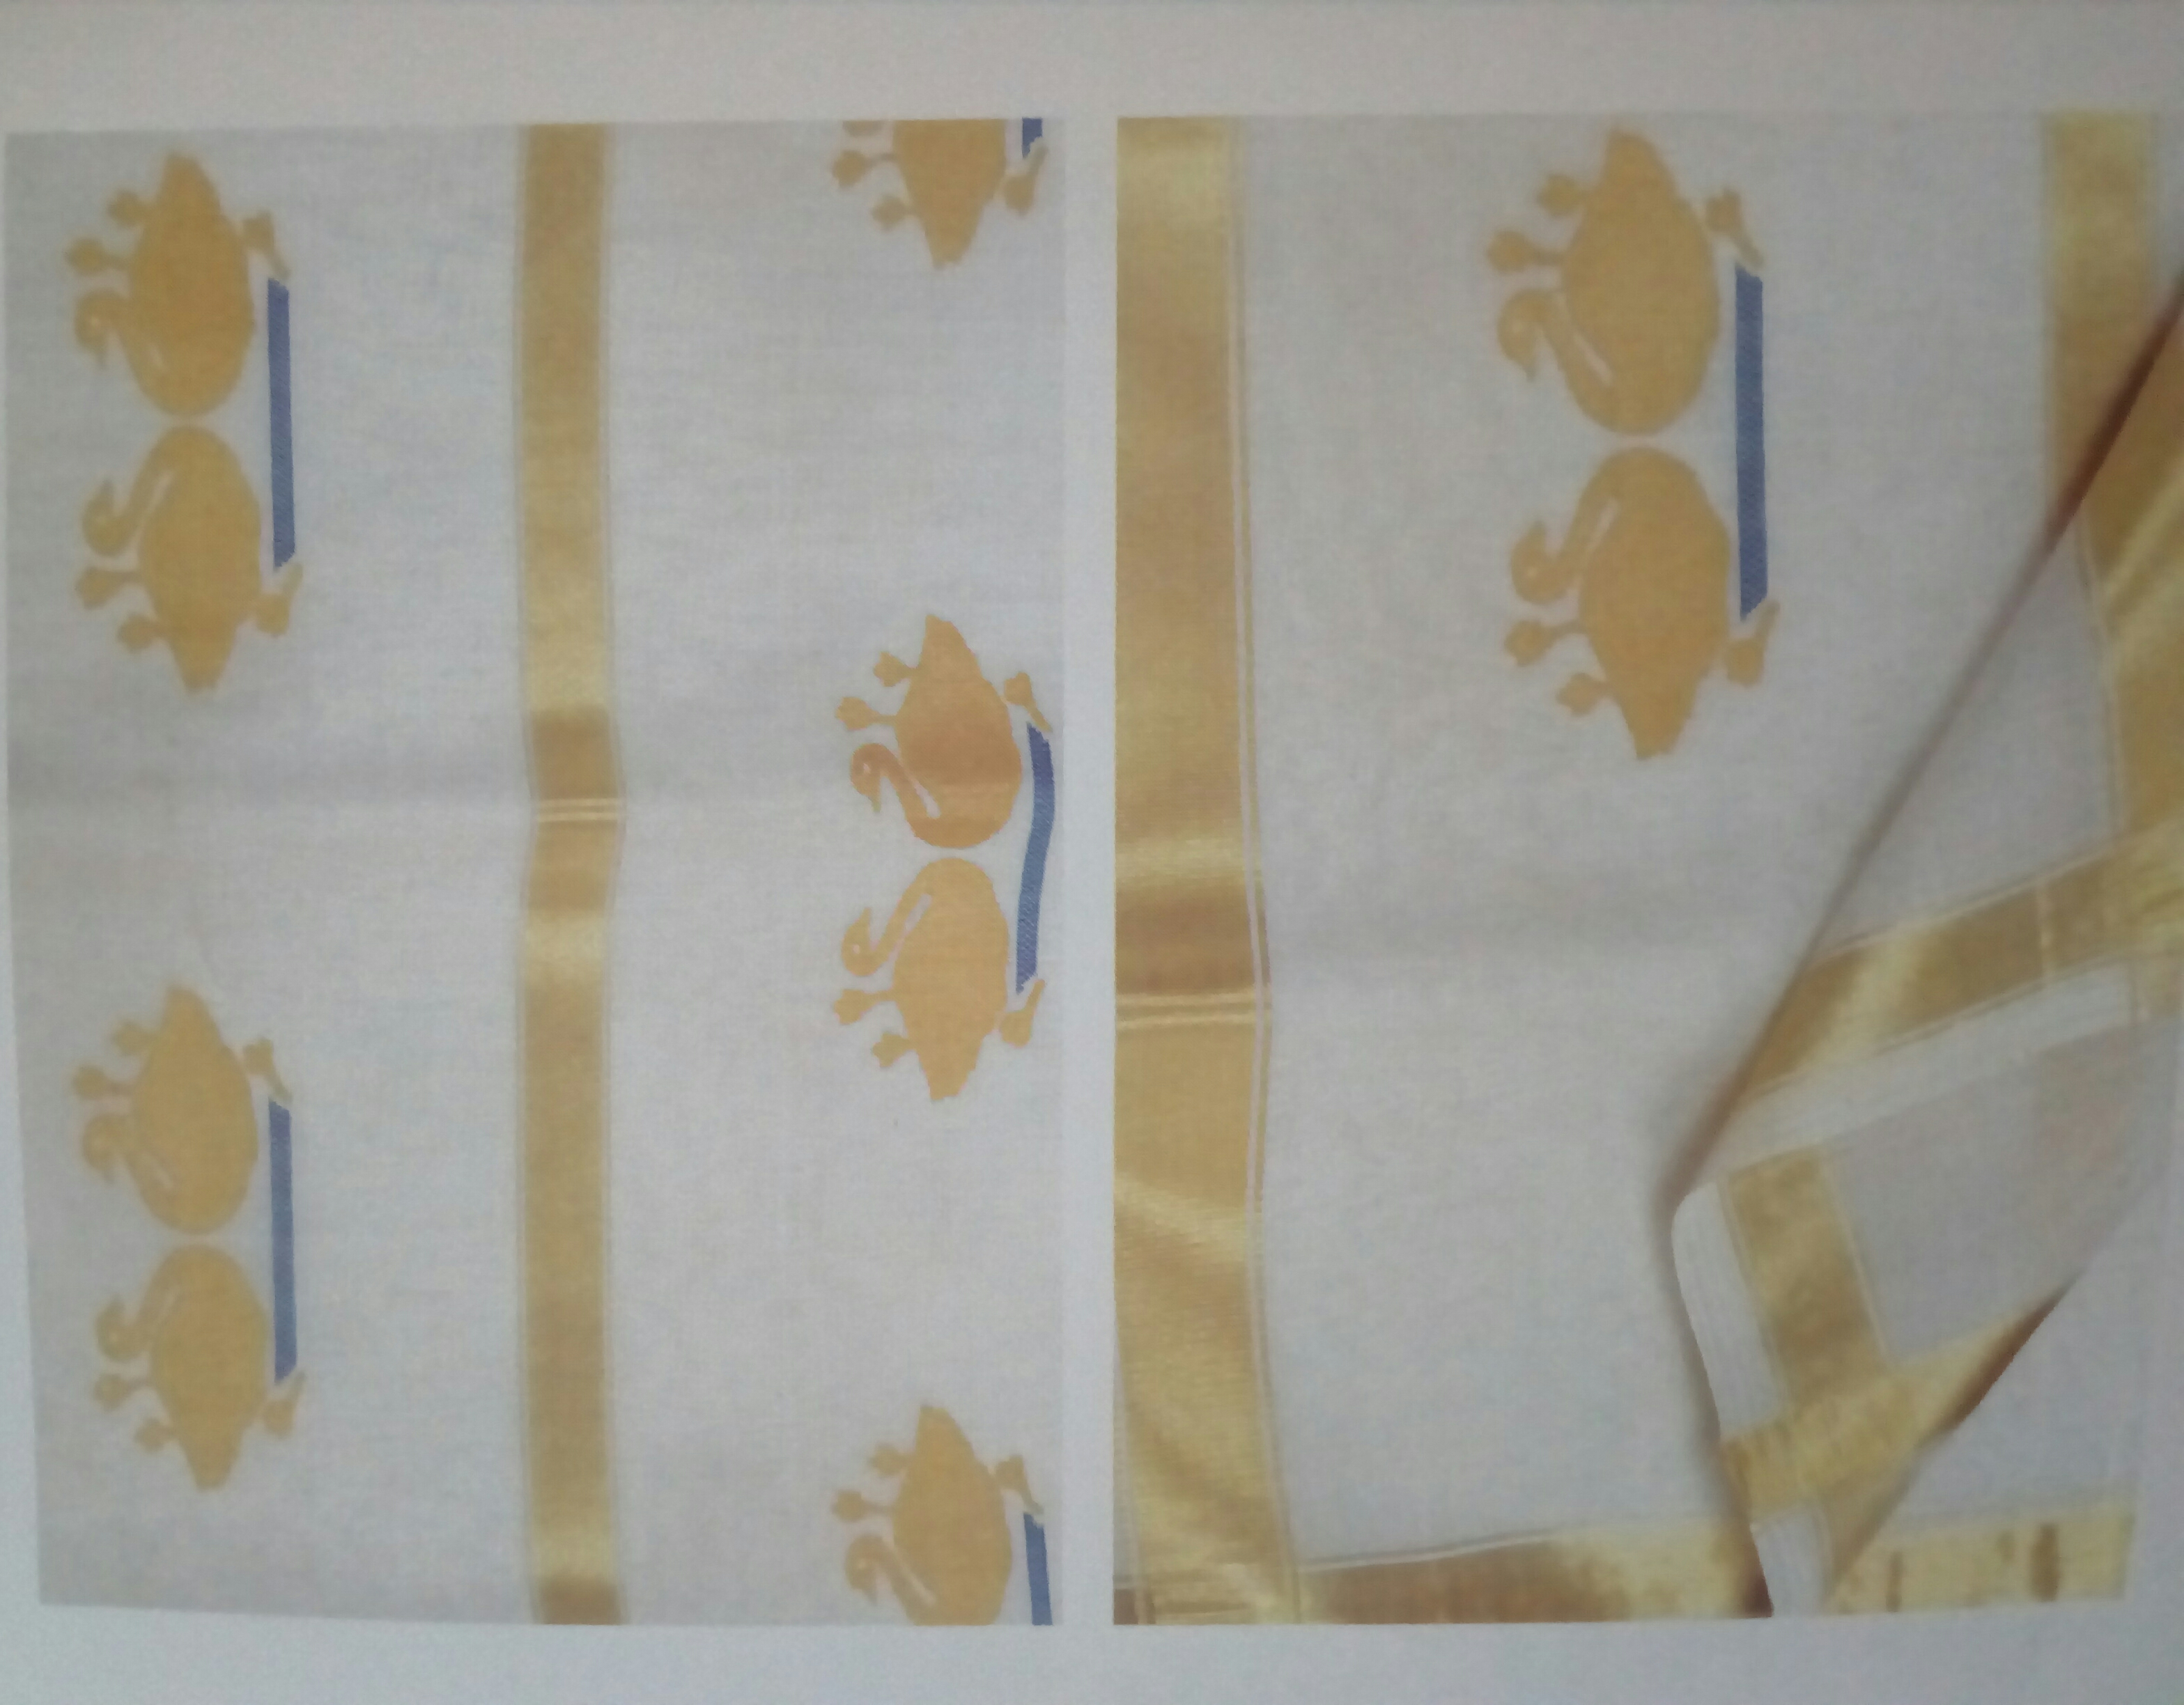 Balarampuram Saree of Thiruvananthpuram, Kerala